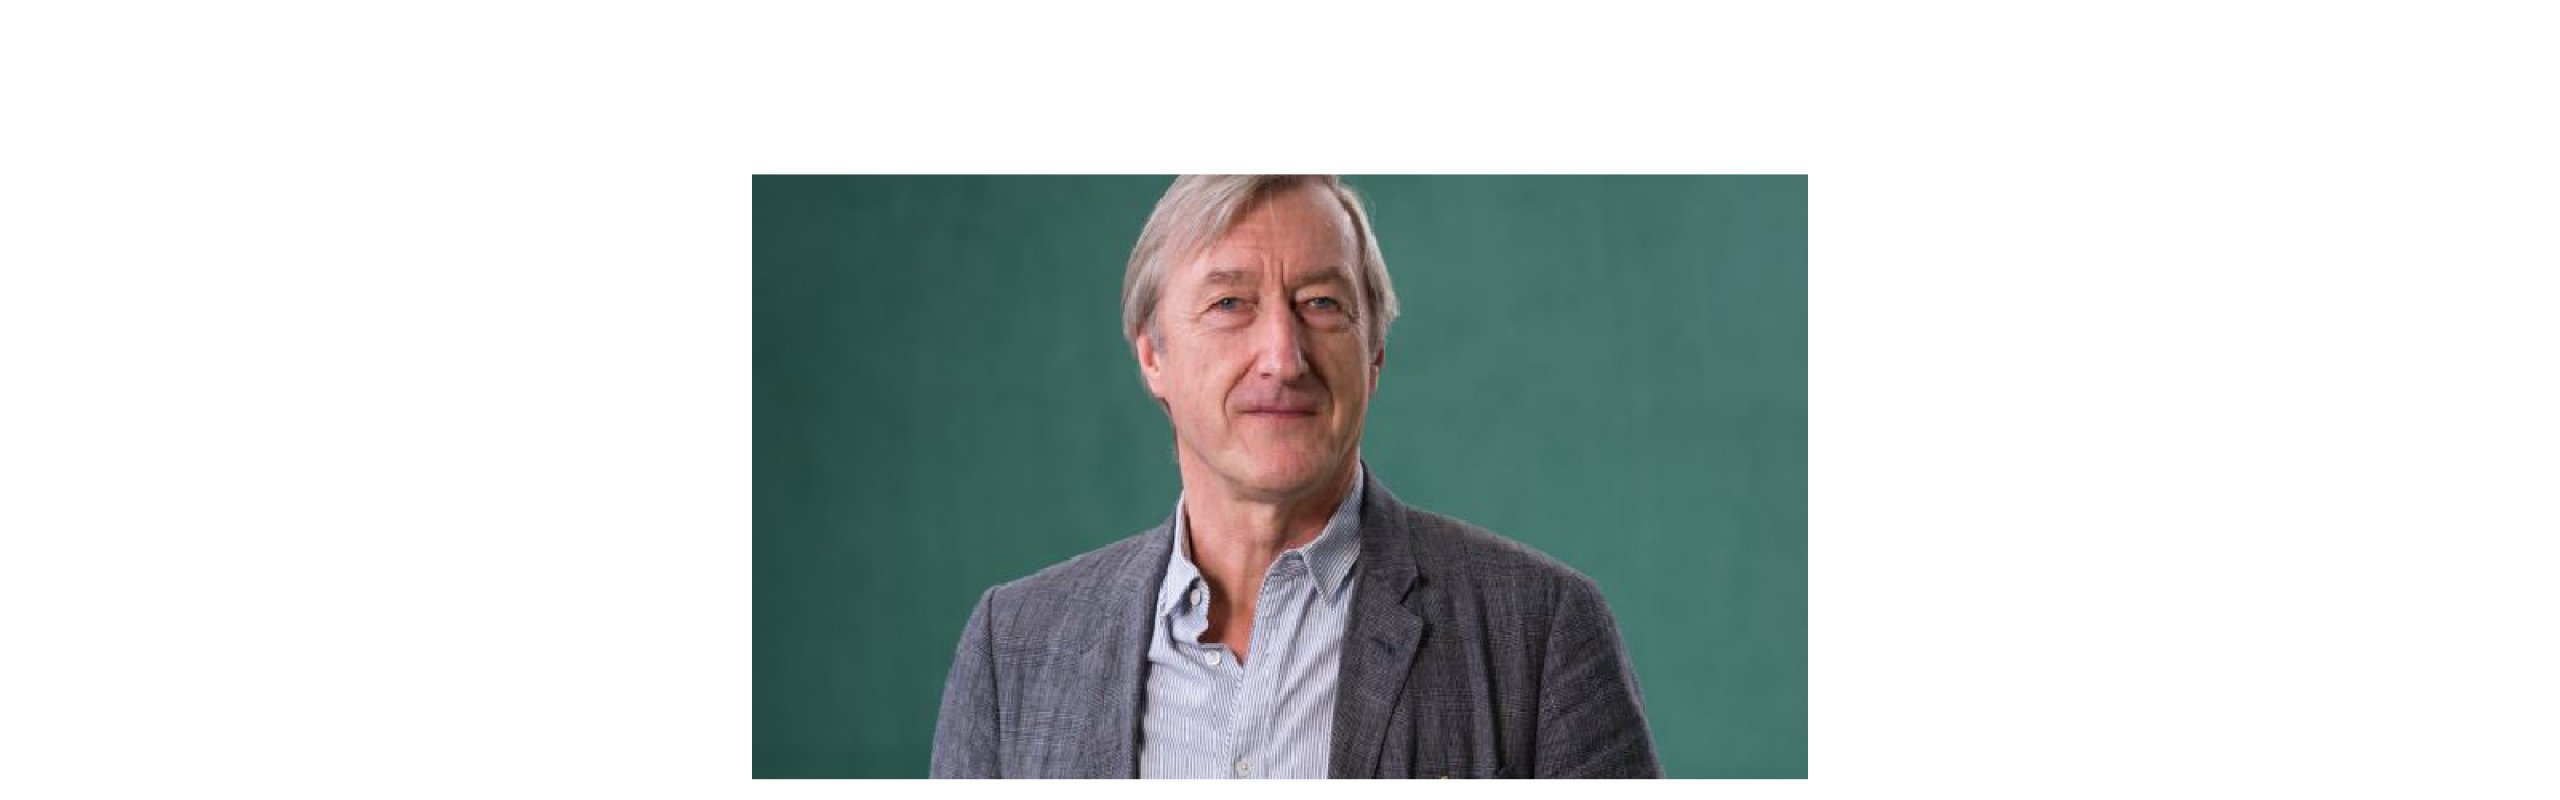 Book signing with Julian Barnes